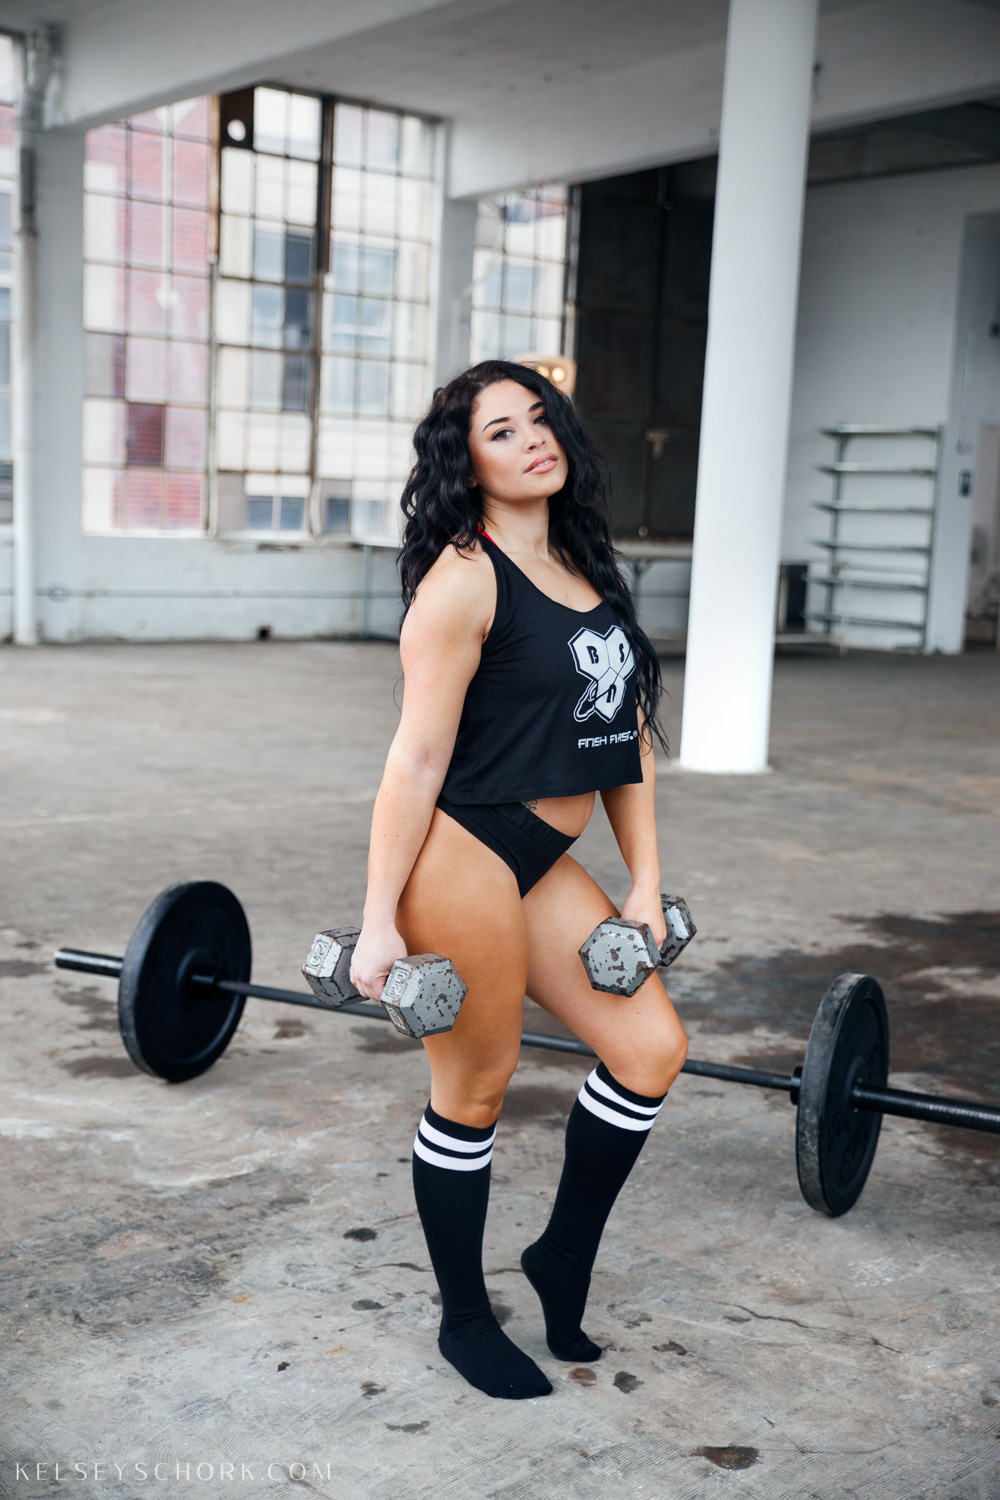 Serena_fitness_model_buffalo-2.jpg